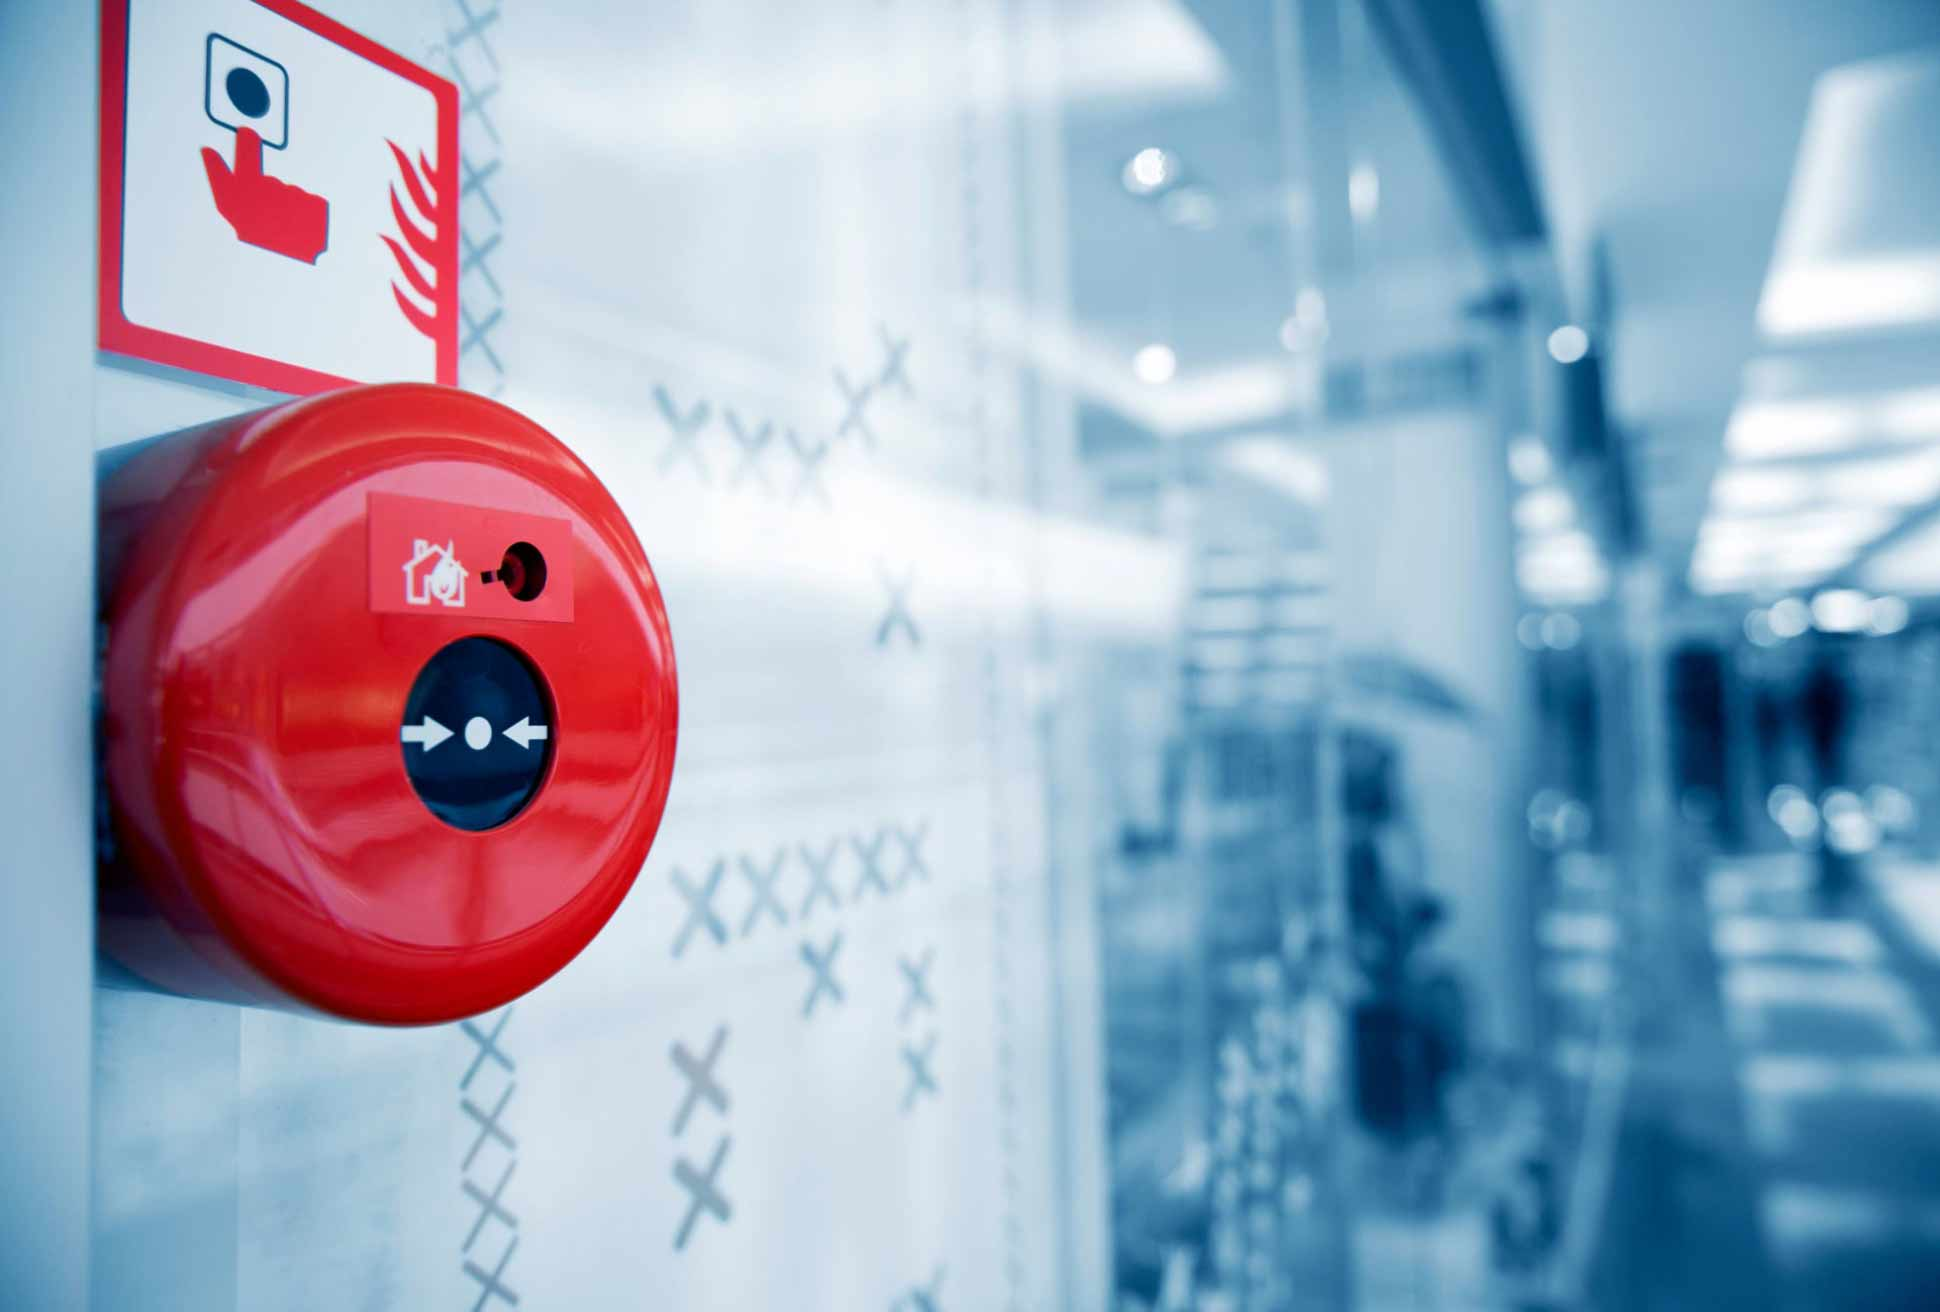 Fire Alarm Systems & Fire Alarm System Install